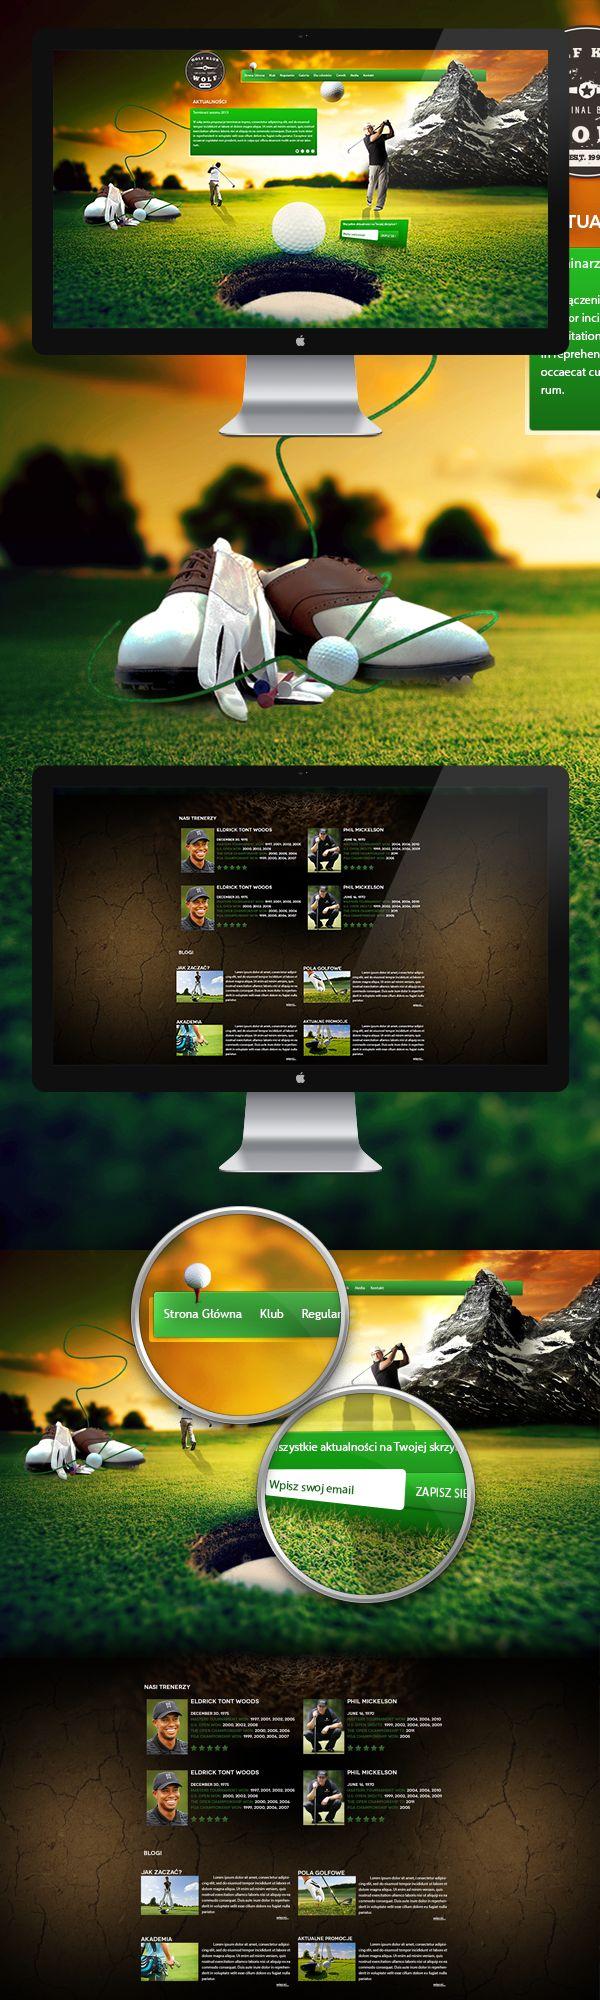 Design for Golf Klub